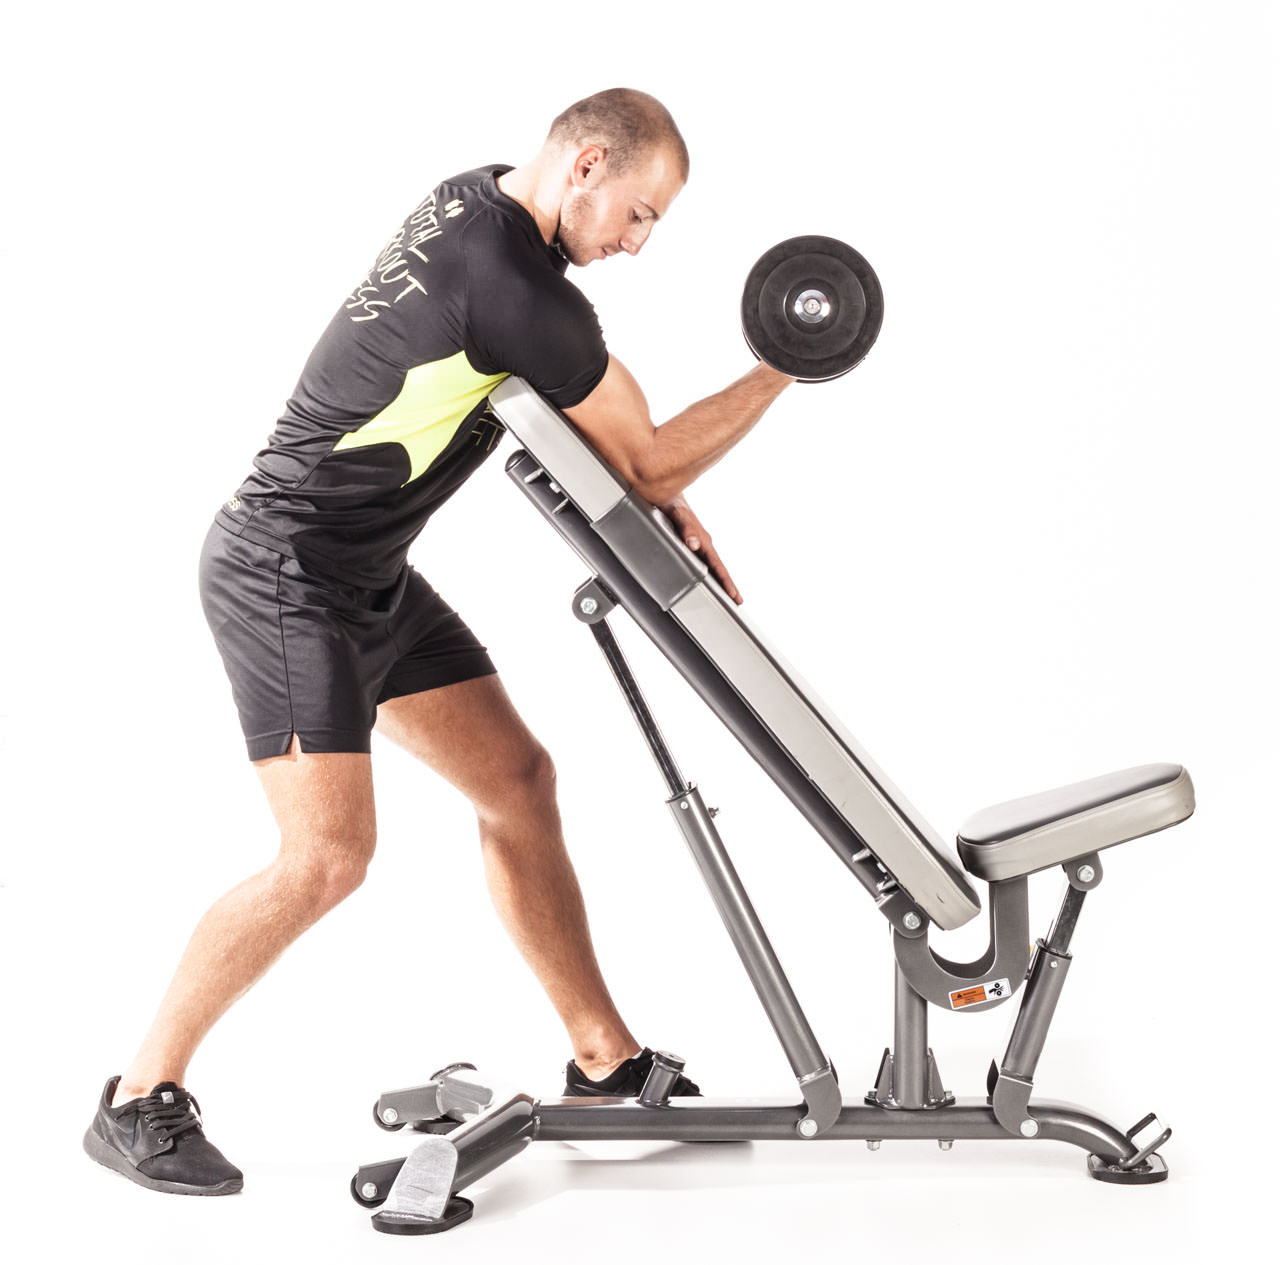 One-Arm Dumbbell Curl Over Incline Bench frame #2